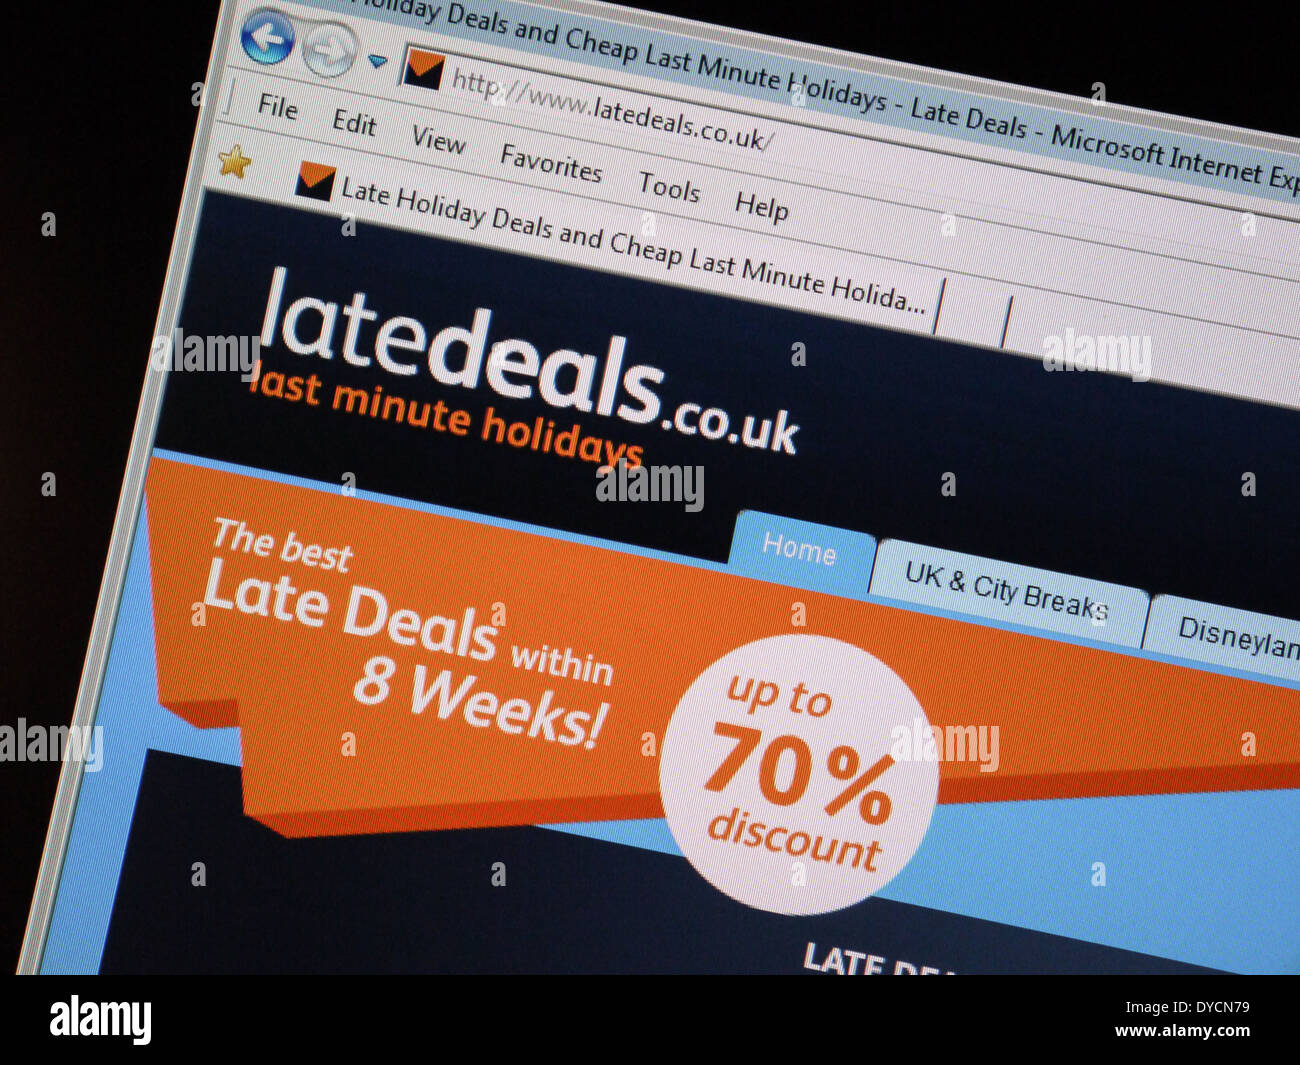 last minute vacation deal website latedeals - Stock Image